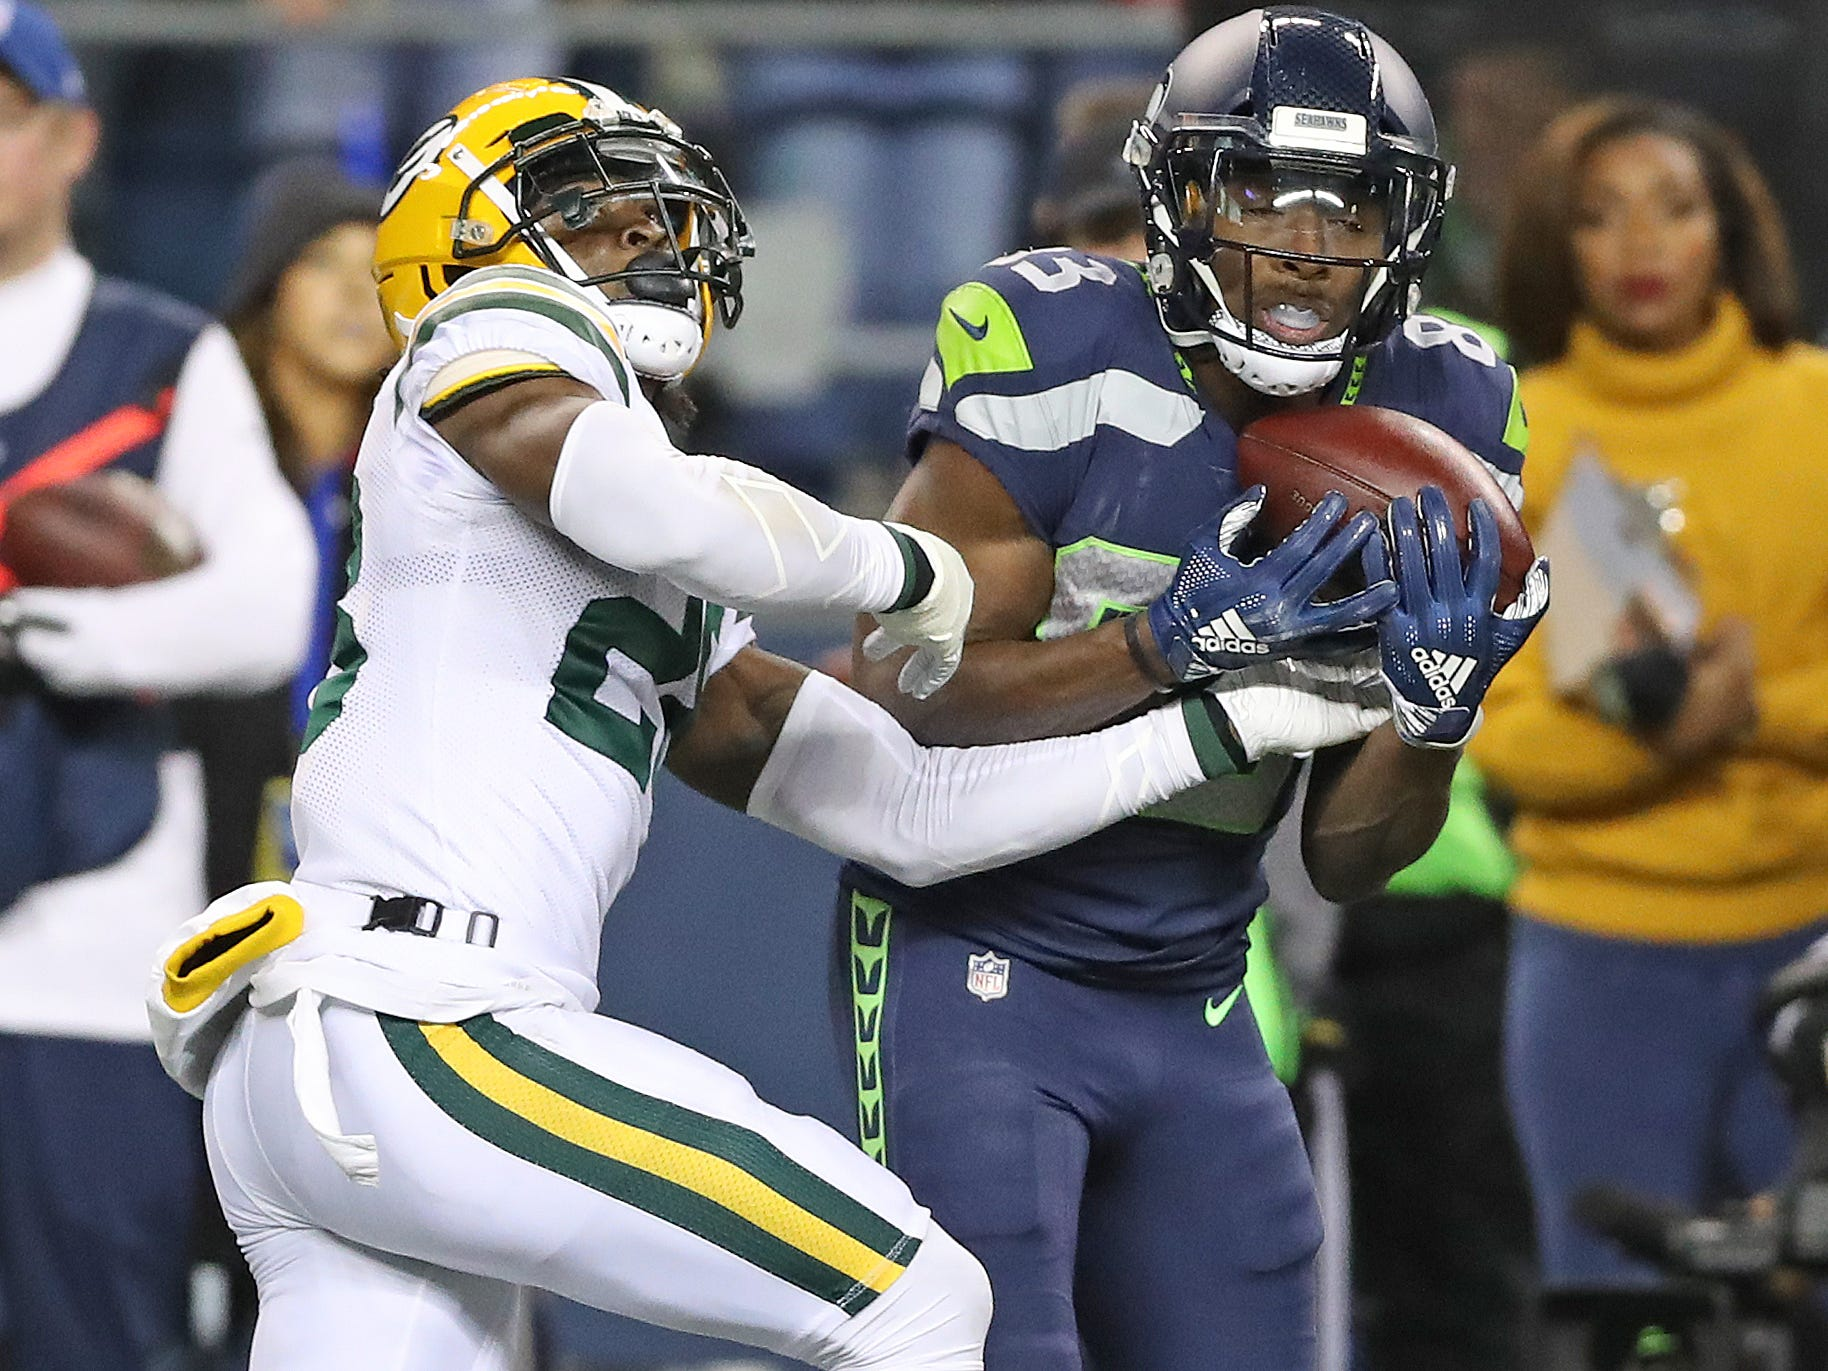 Green Bay Packers defensive back Tony Brown (28) gives up a reception to wide receiver David Moore (83) against the Seattle Seahawks at CenturyLink Field Thursday, November 15, 2018 in Seattle, WA. Jim Matthews/USA TODAY NETWORK-Wis